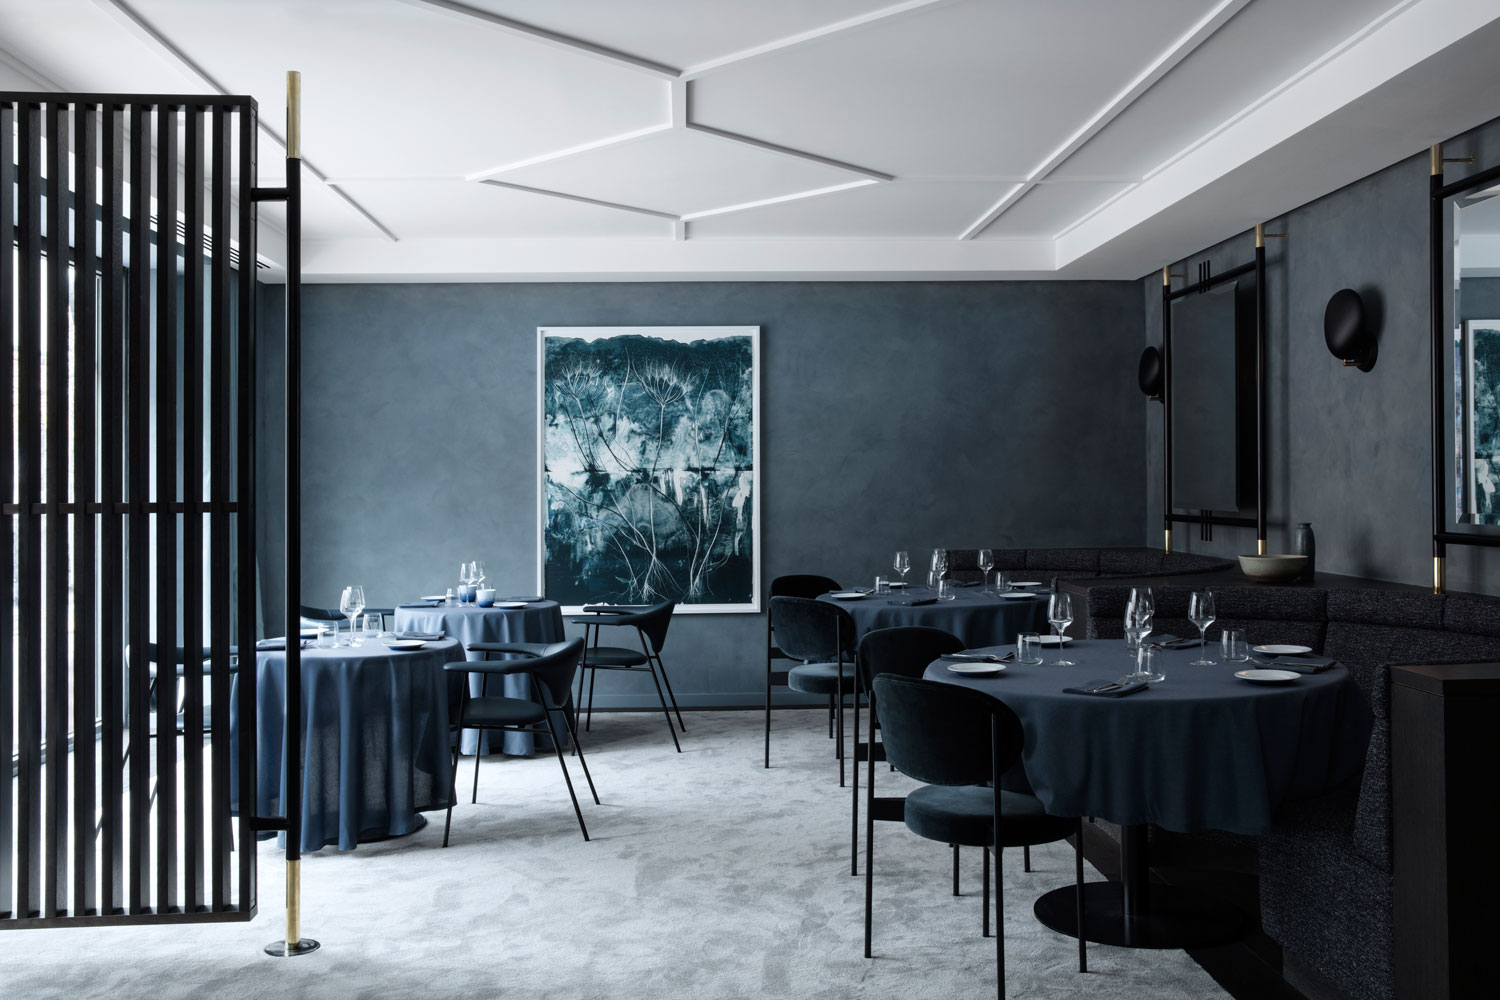 Restaurant Design Paris Maison Du Danemark House Of Denmark In Paris By Gamfratesi